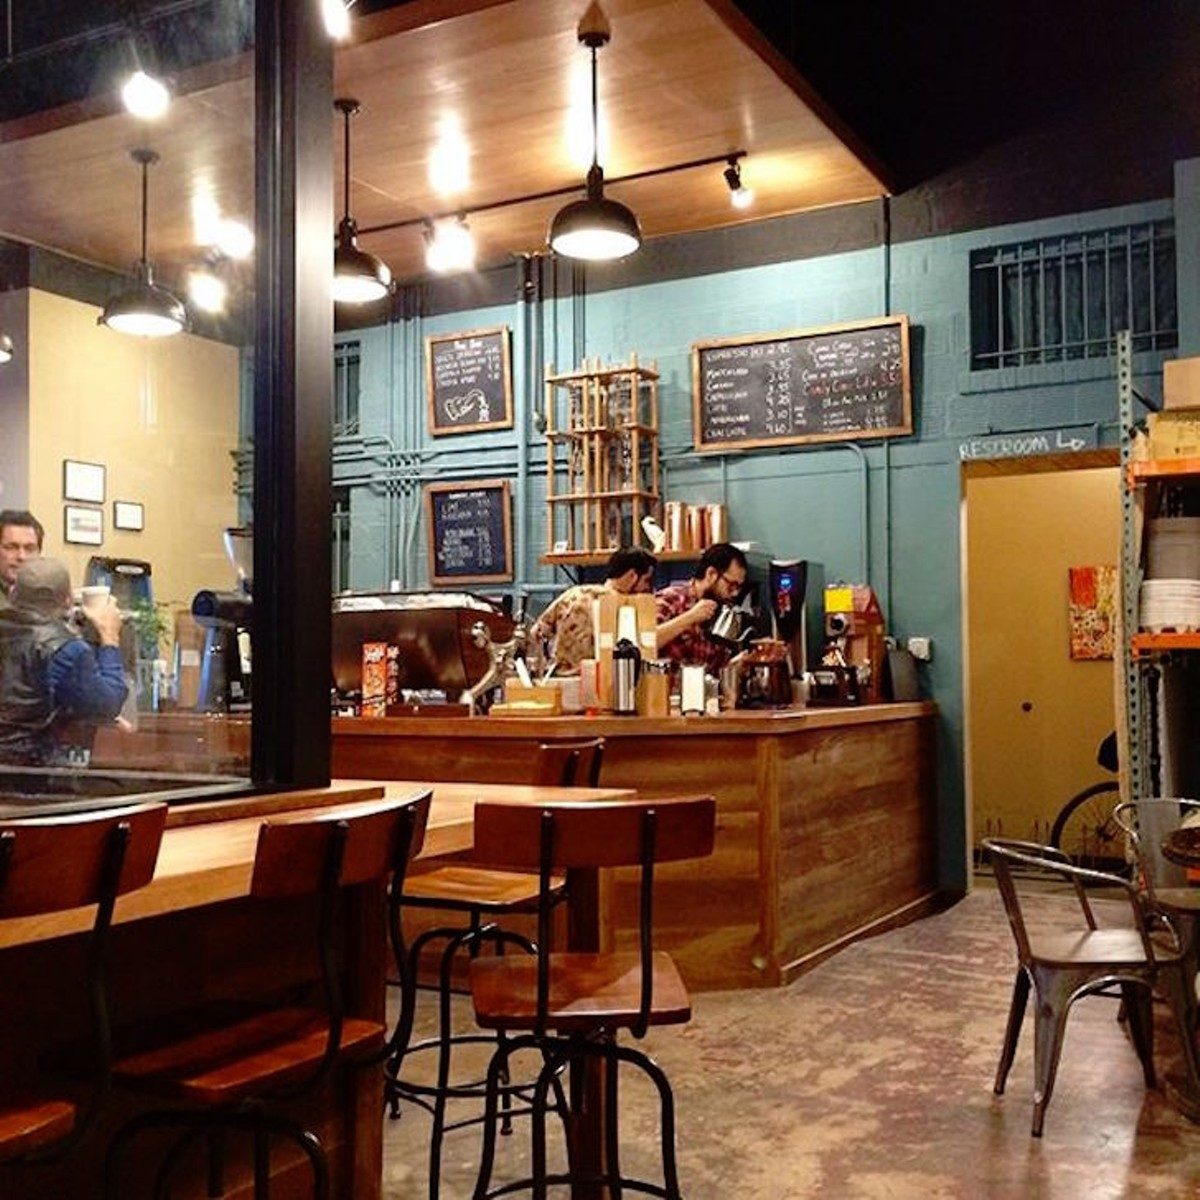 European Home Design Nyc: 25 Coffee Shops You Should Visit In San Antonio That Aren